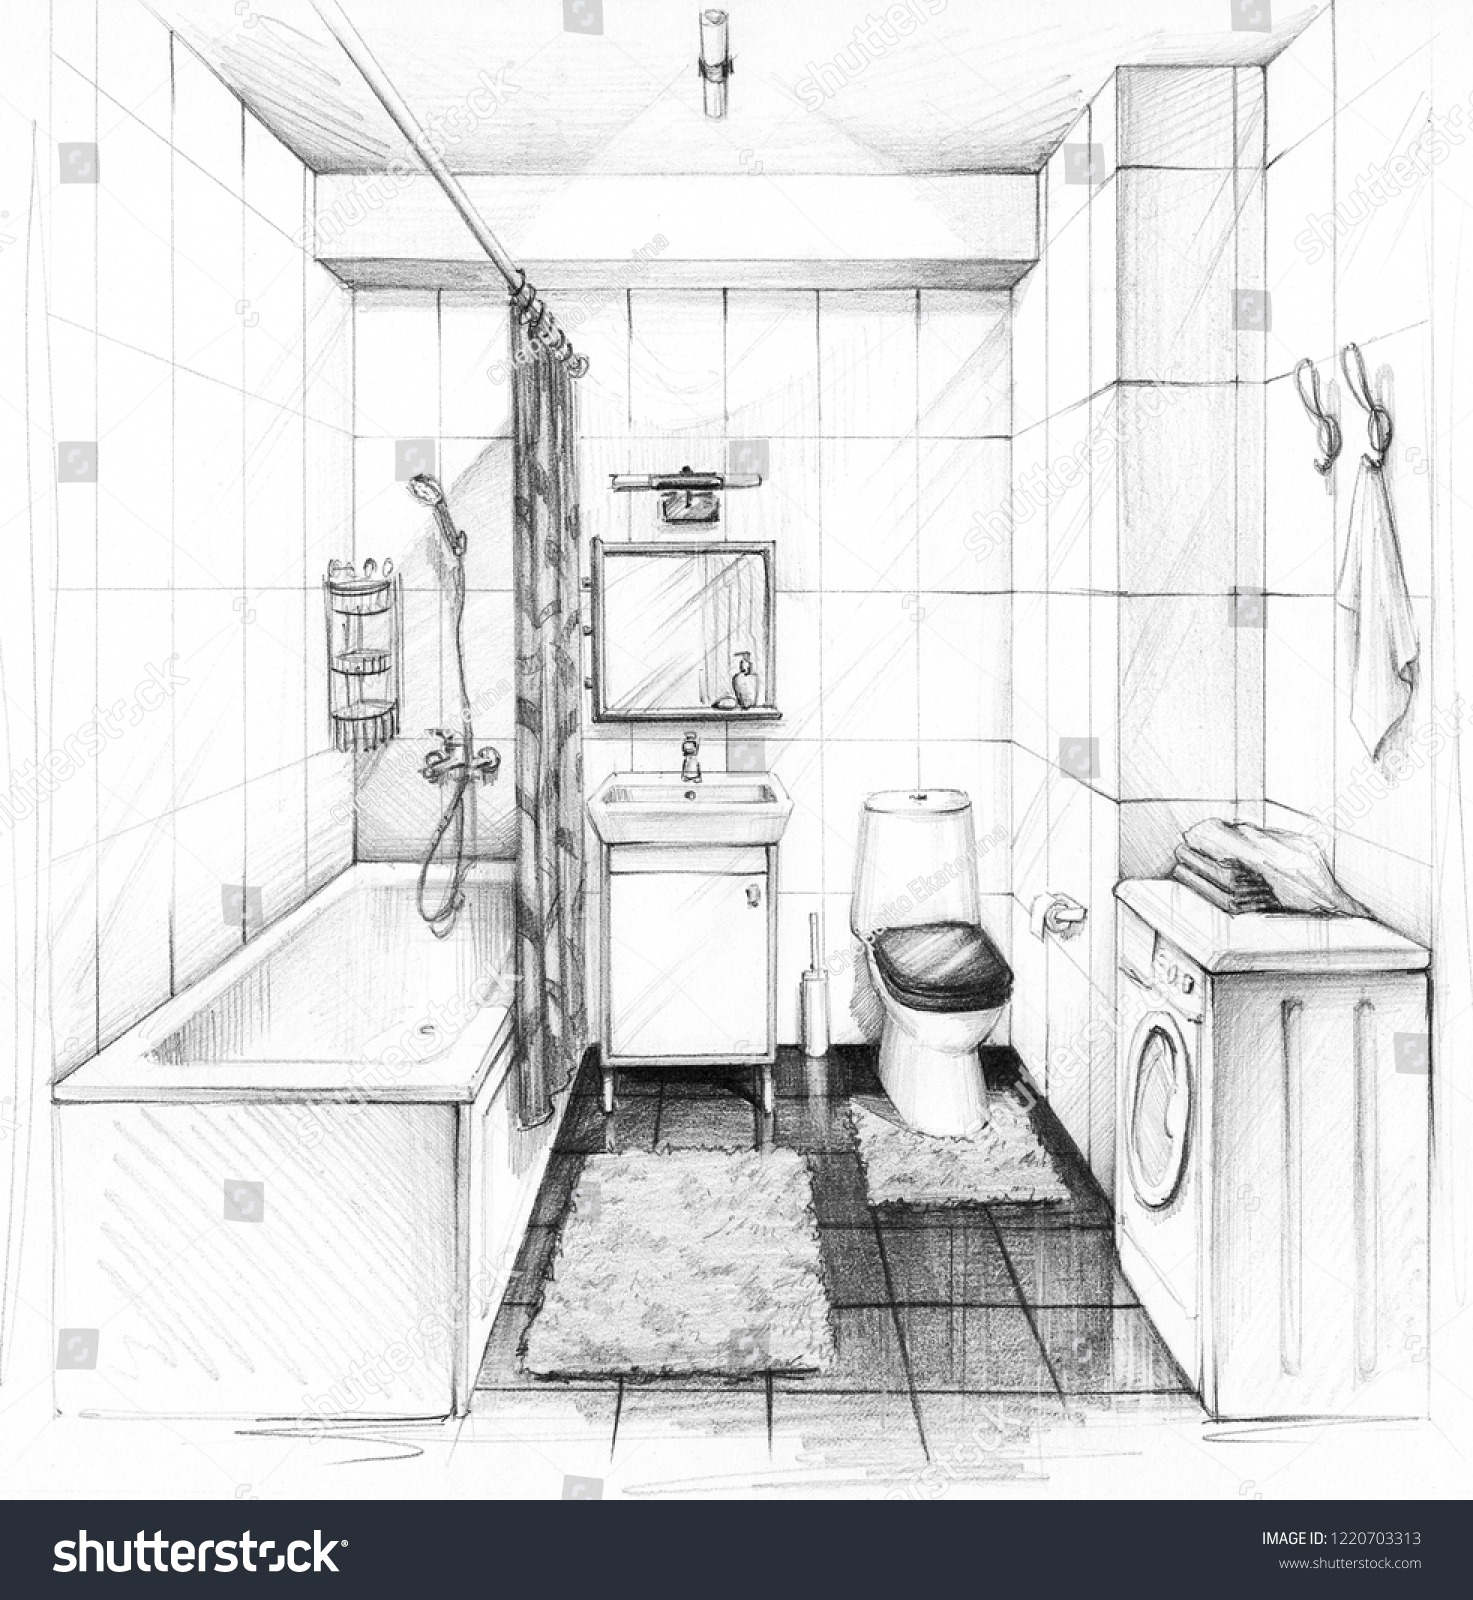 Interior sketch bathroom design in a modern style conciseness and simplicity pencil drawing